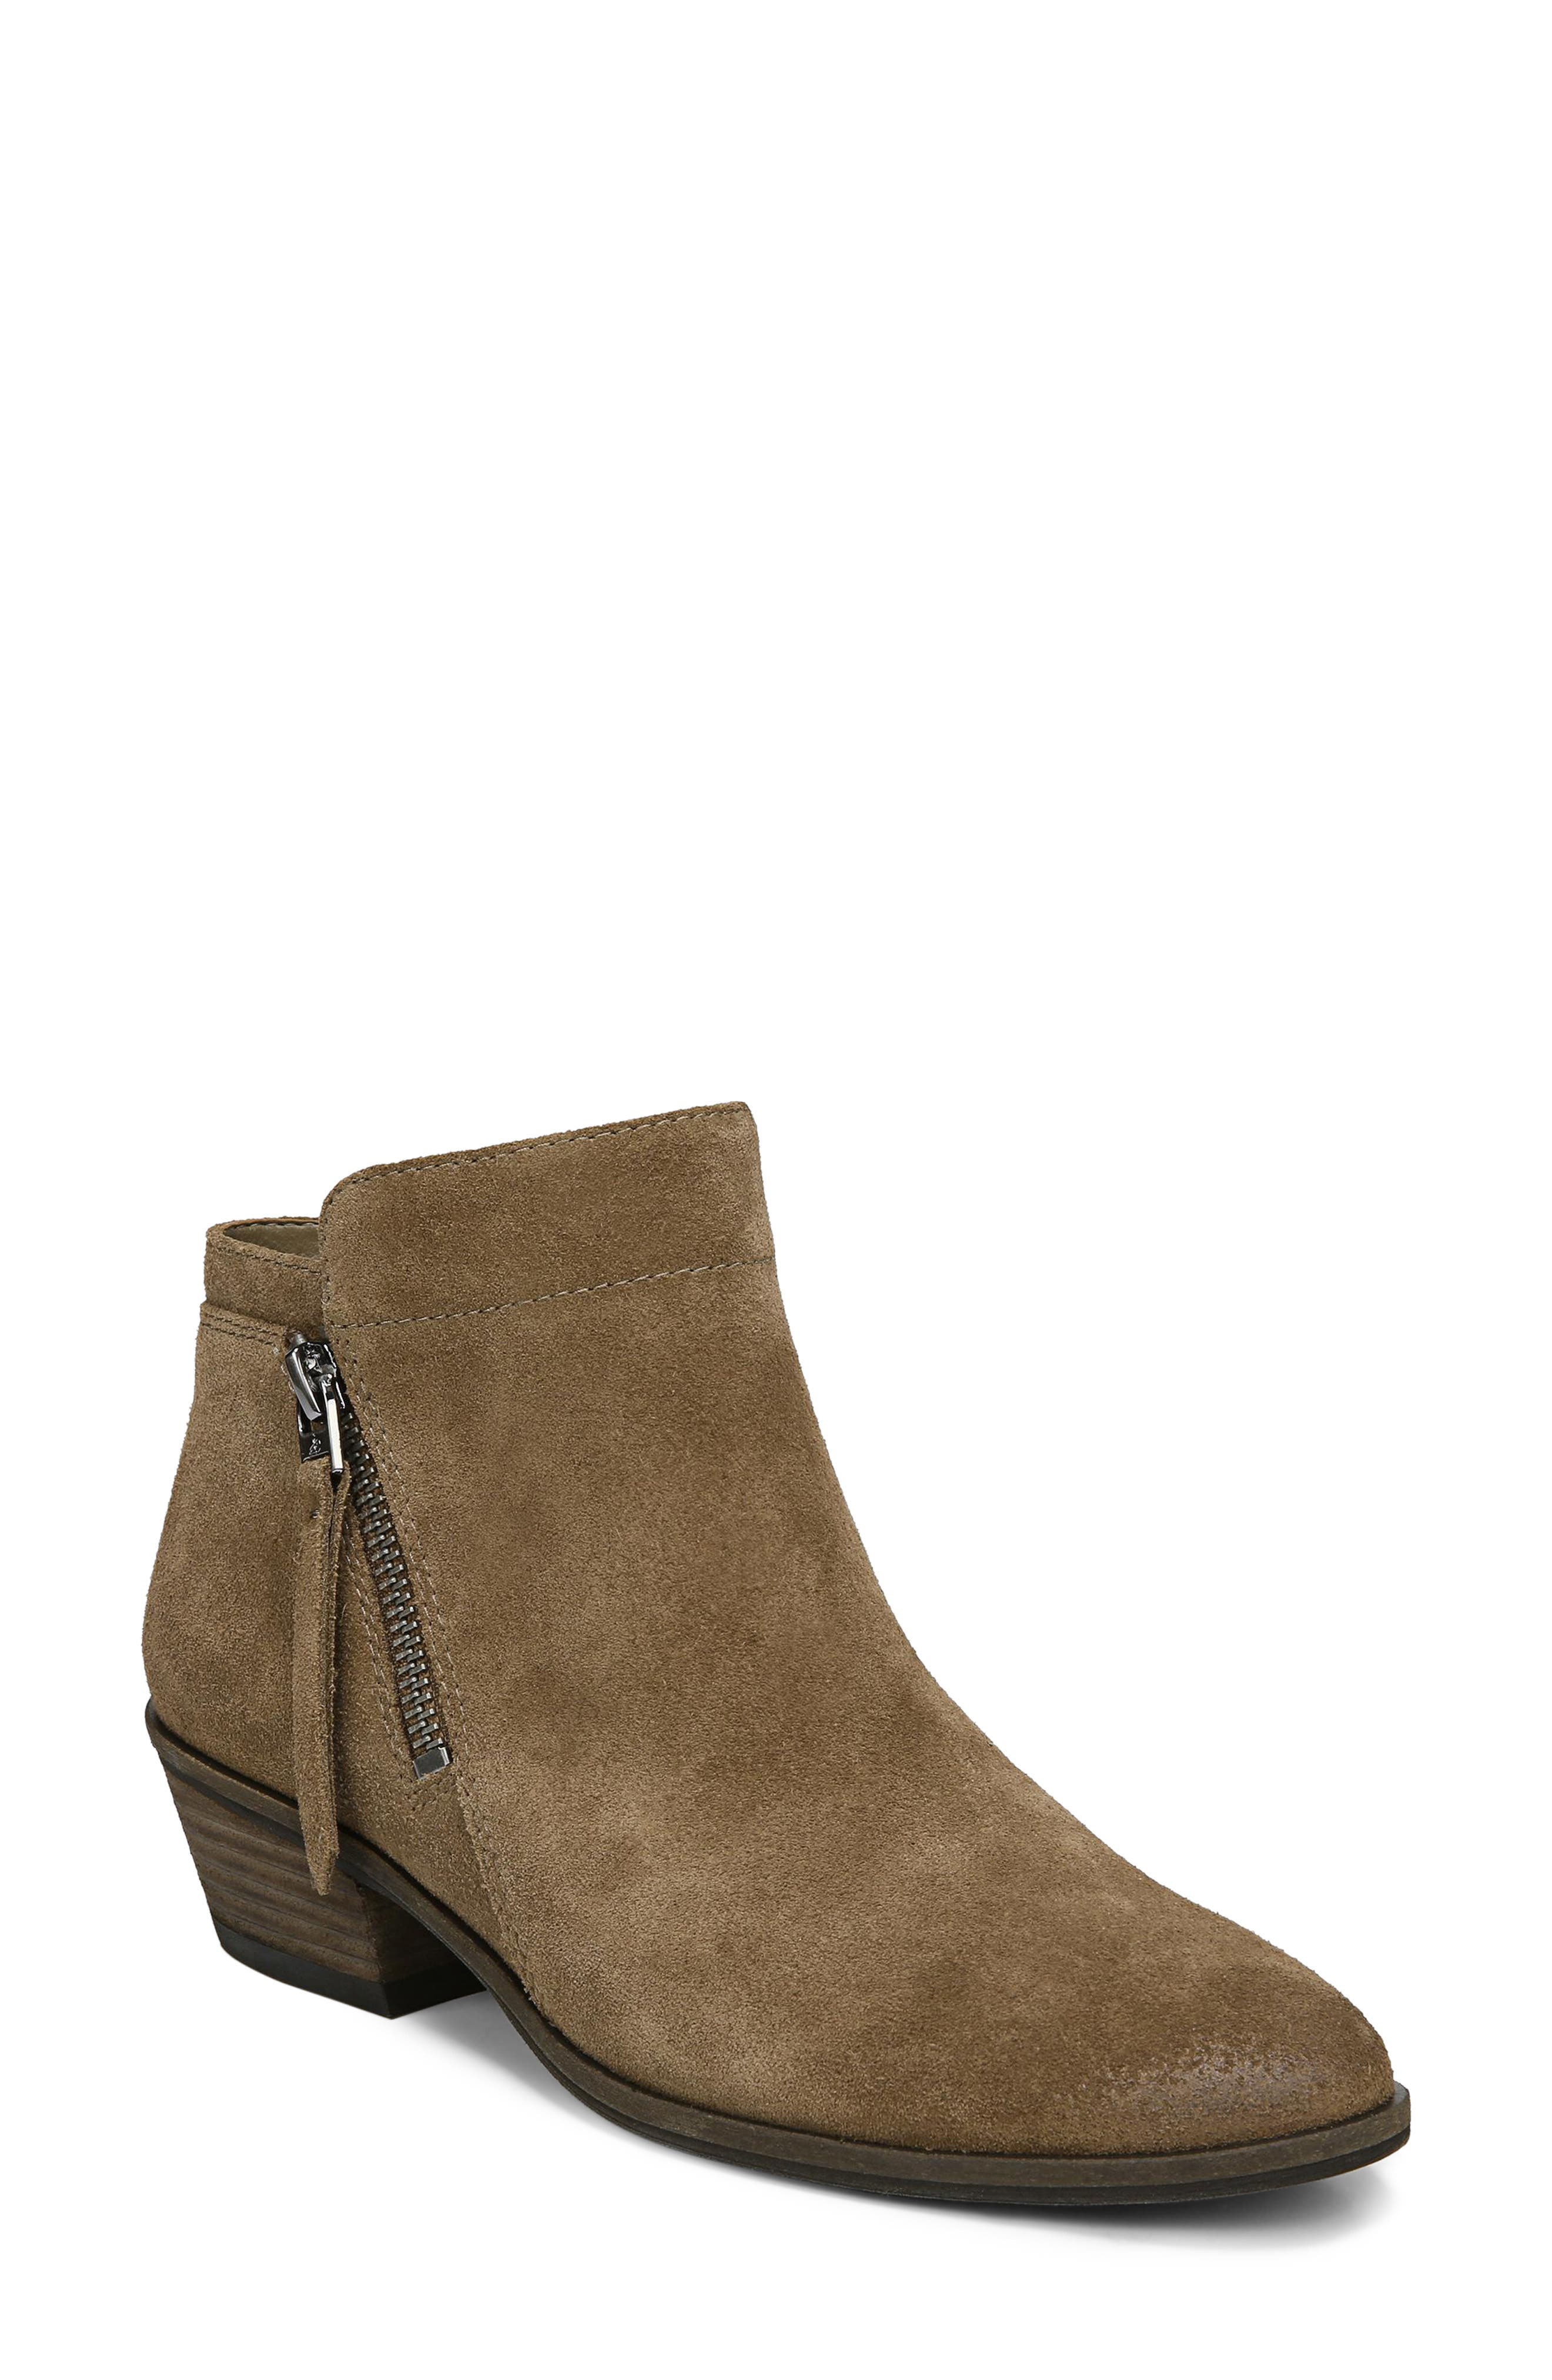 Packer Bootie,                             Main thumbnail 1, color,                             DARK TAUPE SUEDE LEATHER